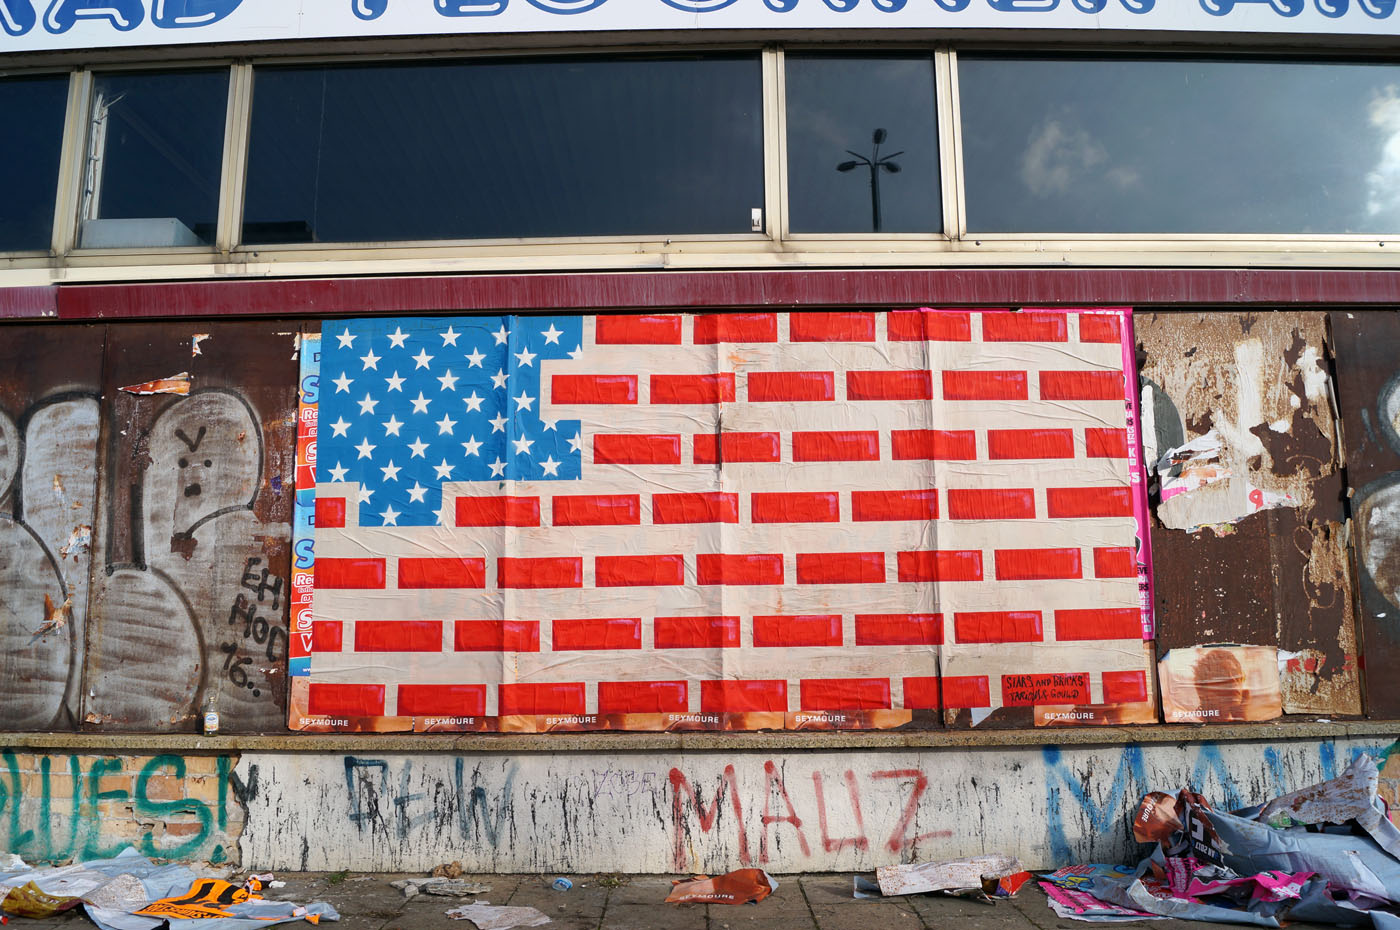 An Urban Art reinterpretation of the American Flag in Berlin